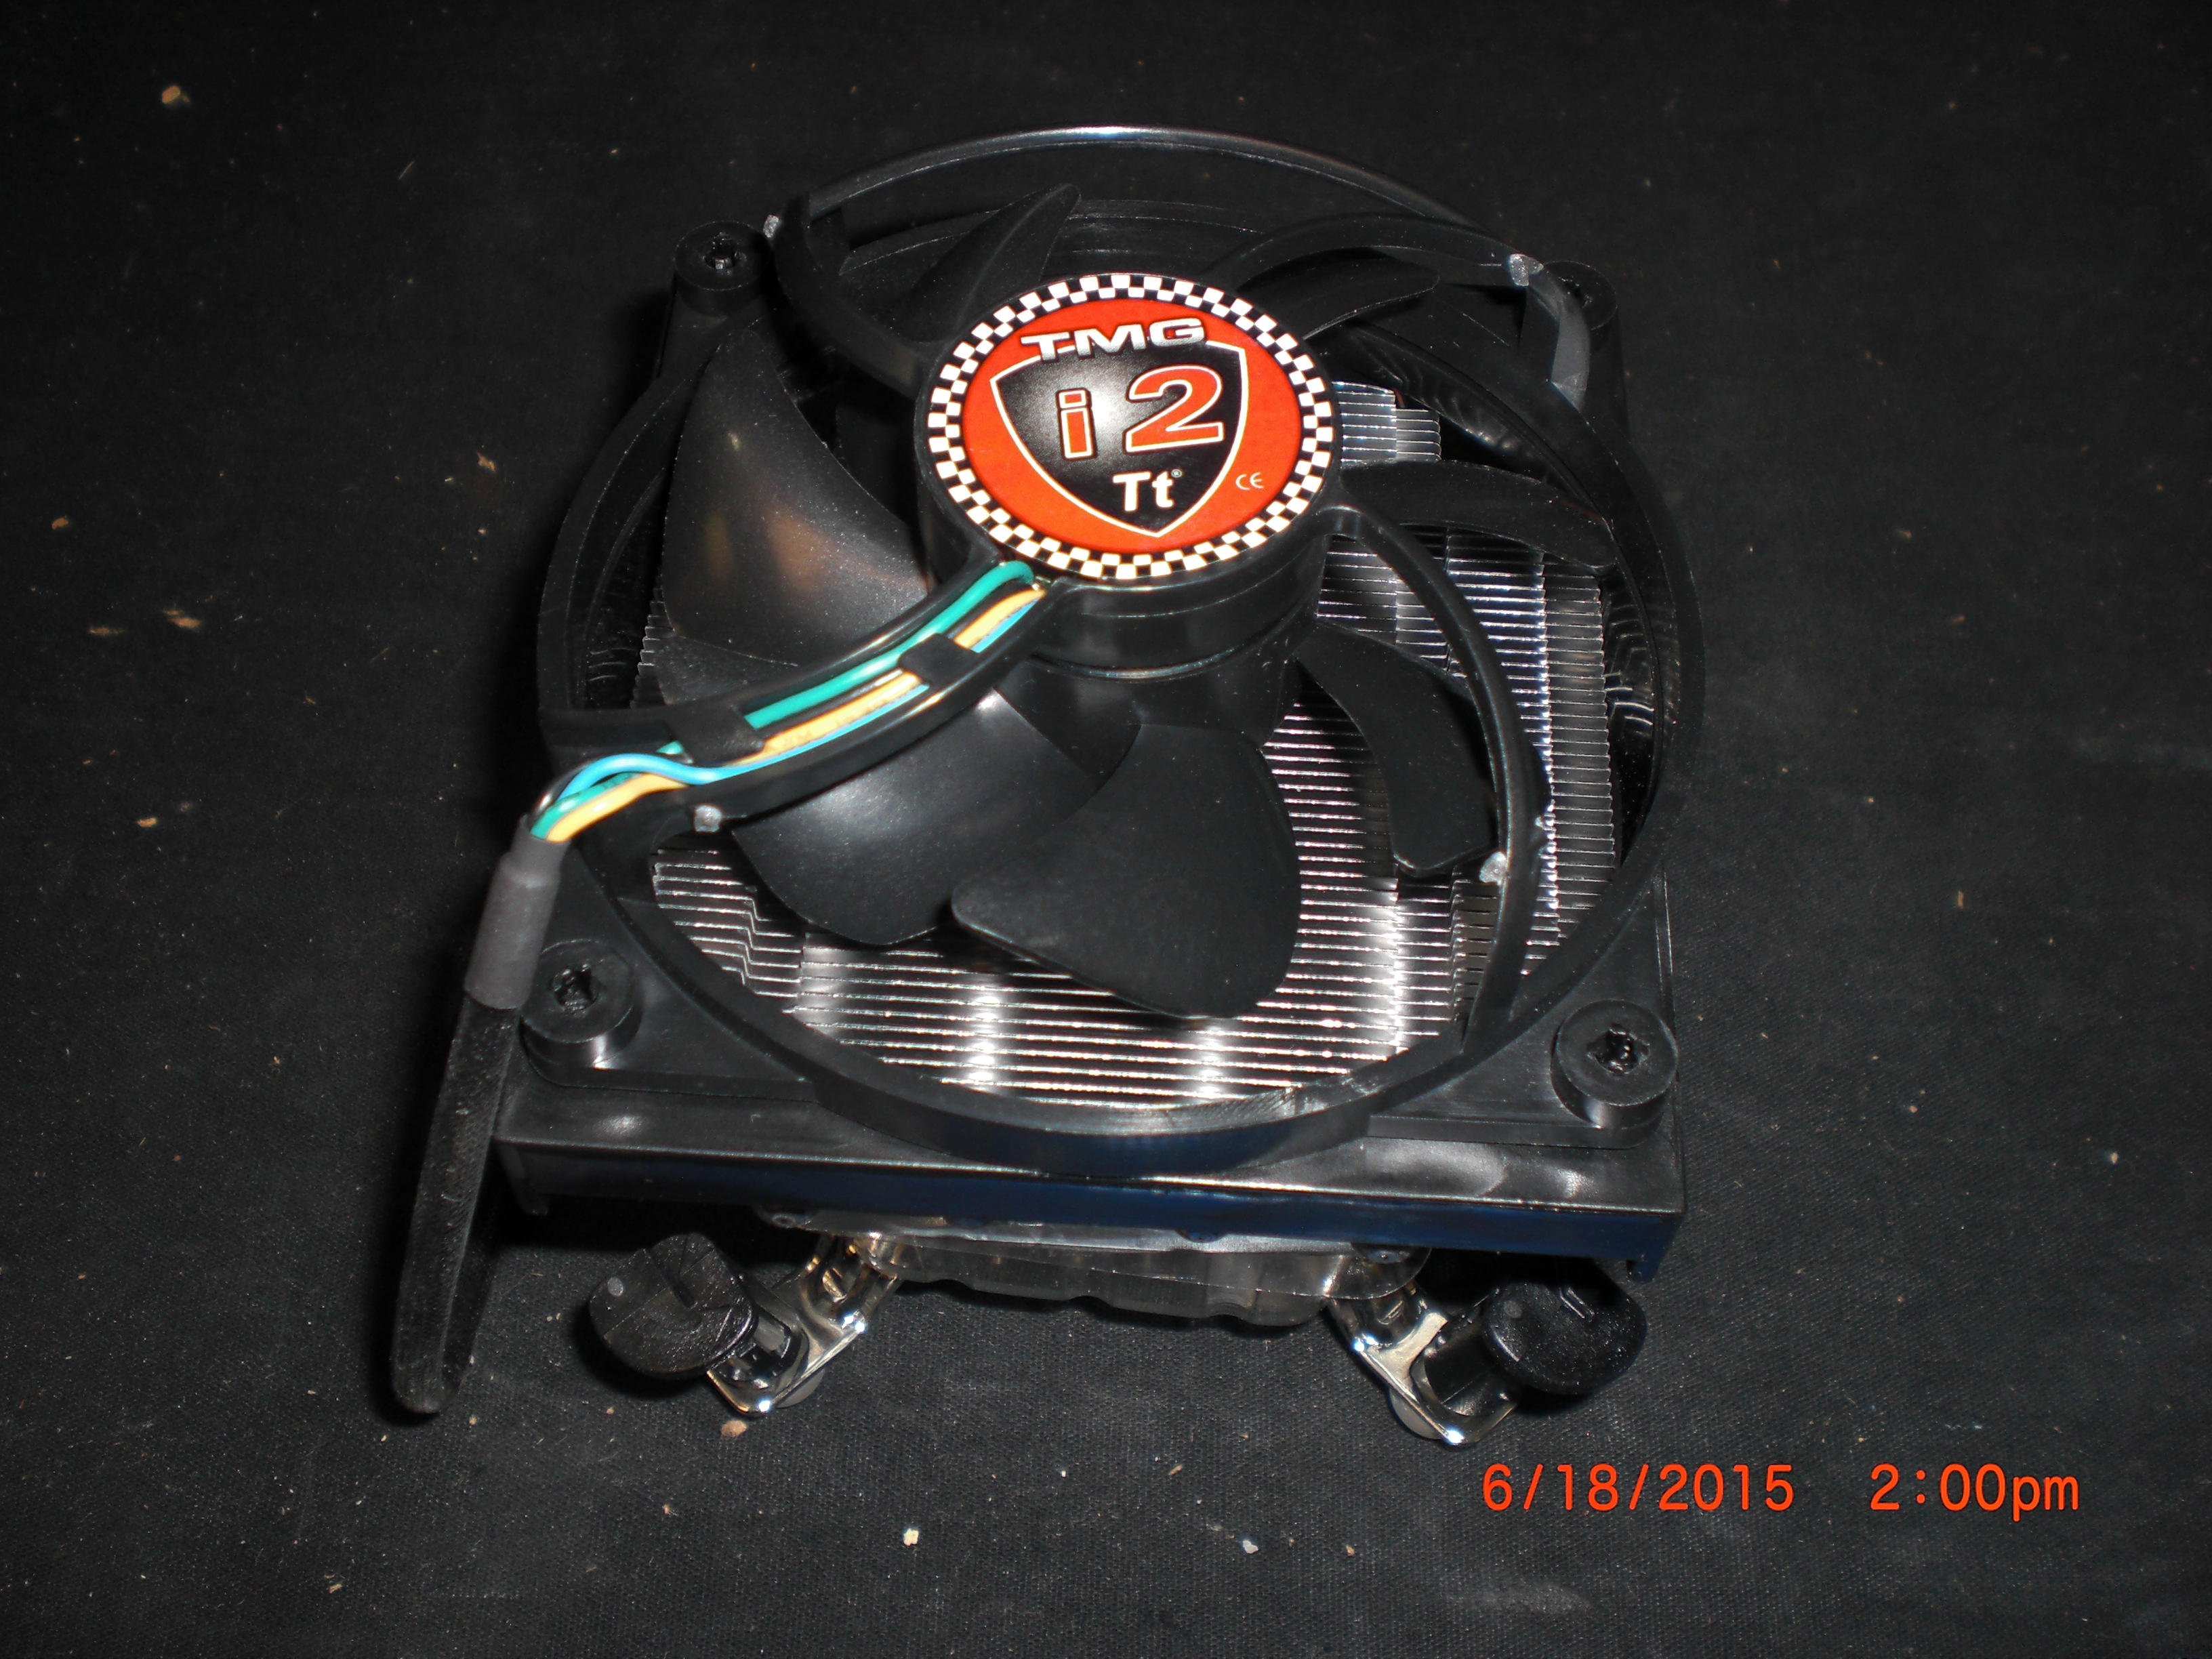 Computer Accessory THERMALTAKE TMG-i2 Socket 775 / Copper Base / CPU Cooler